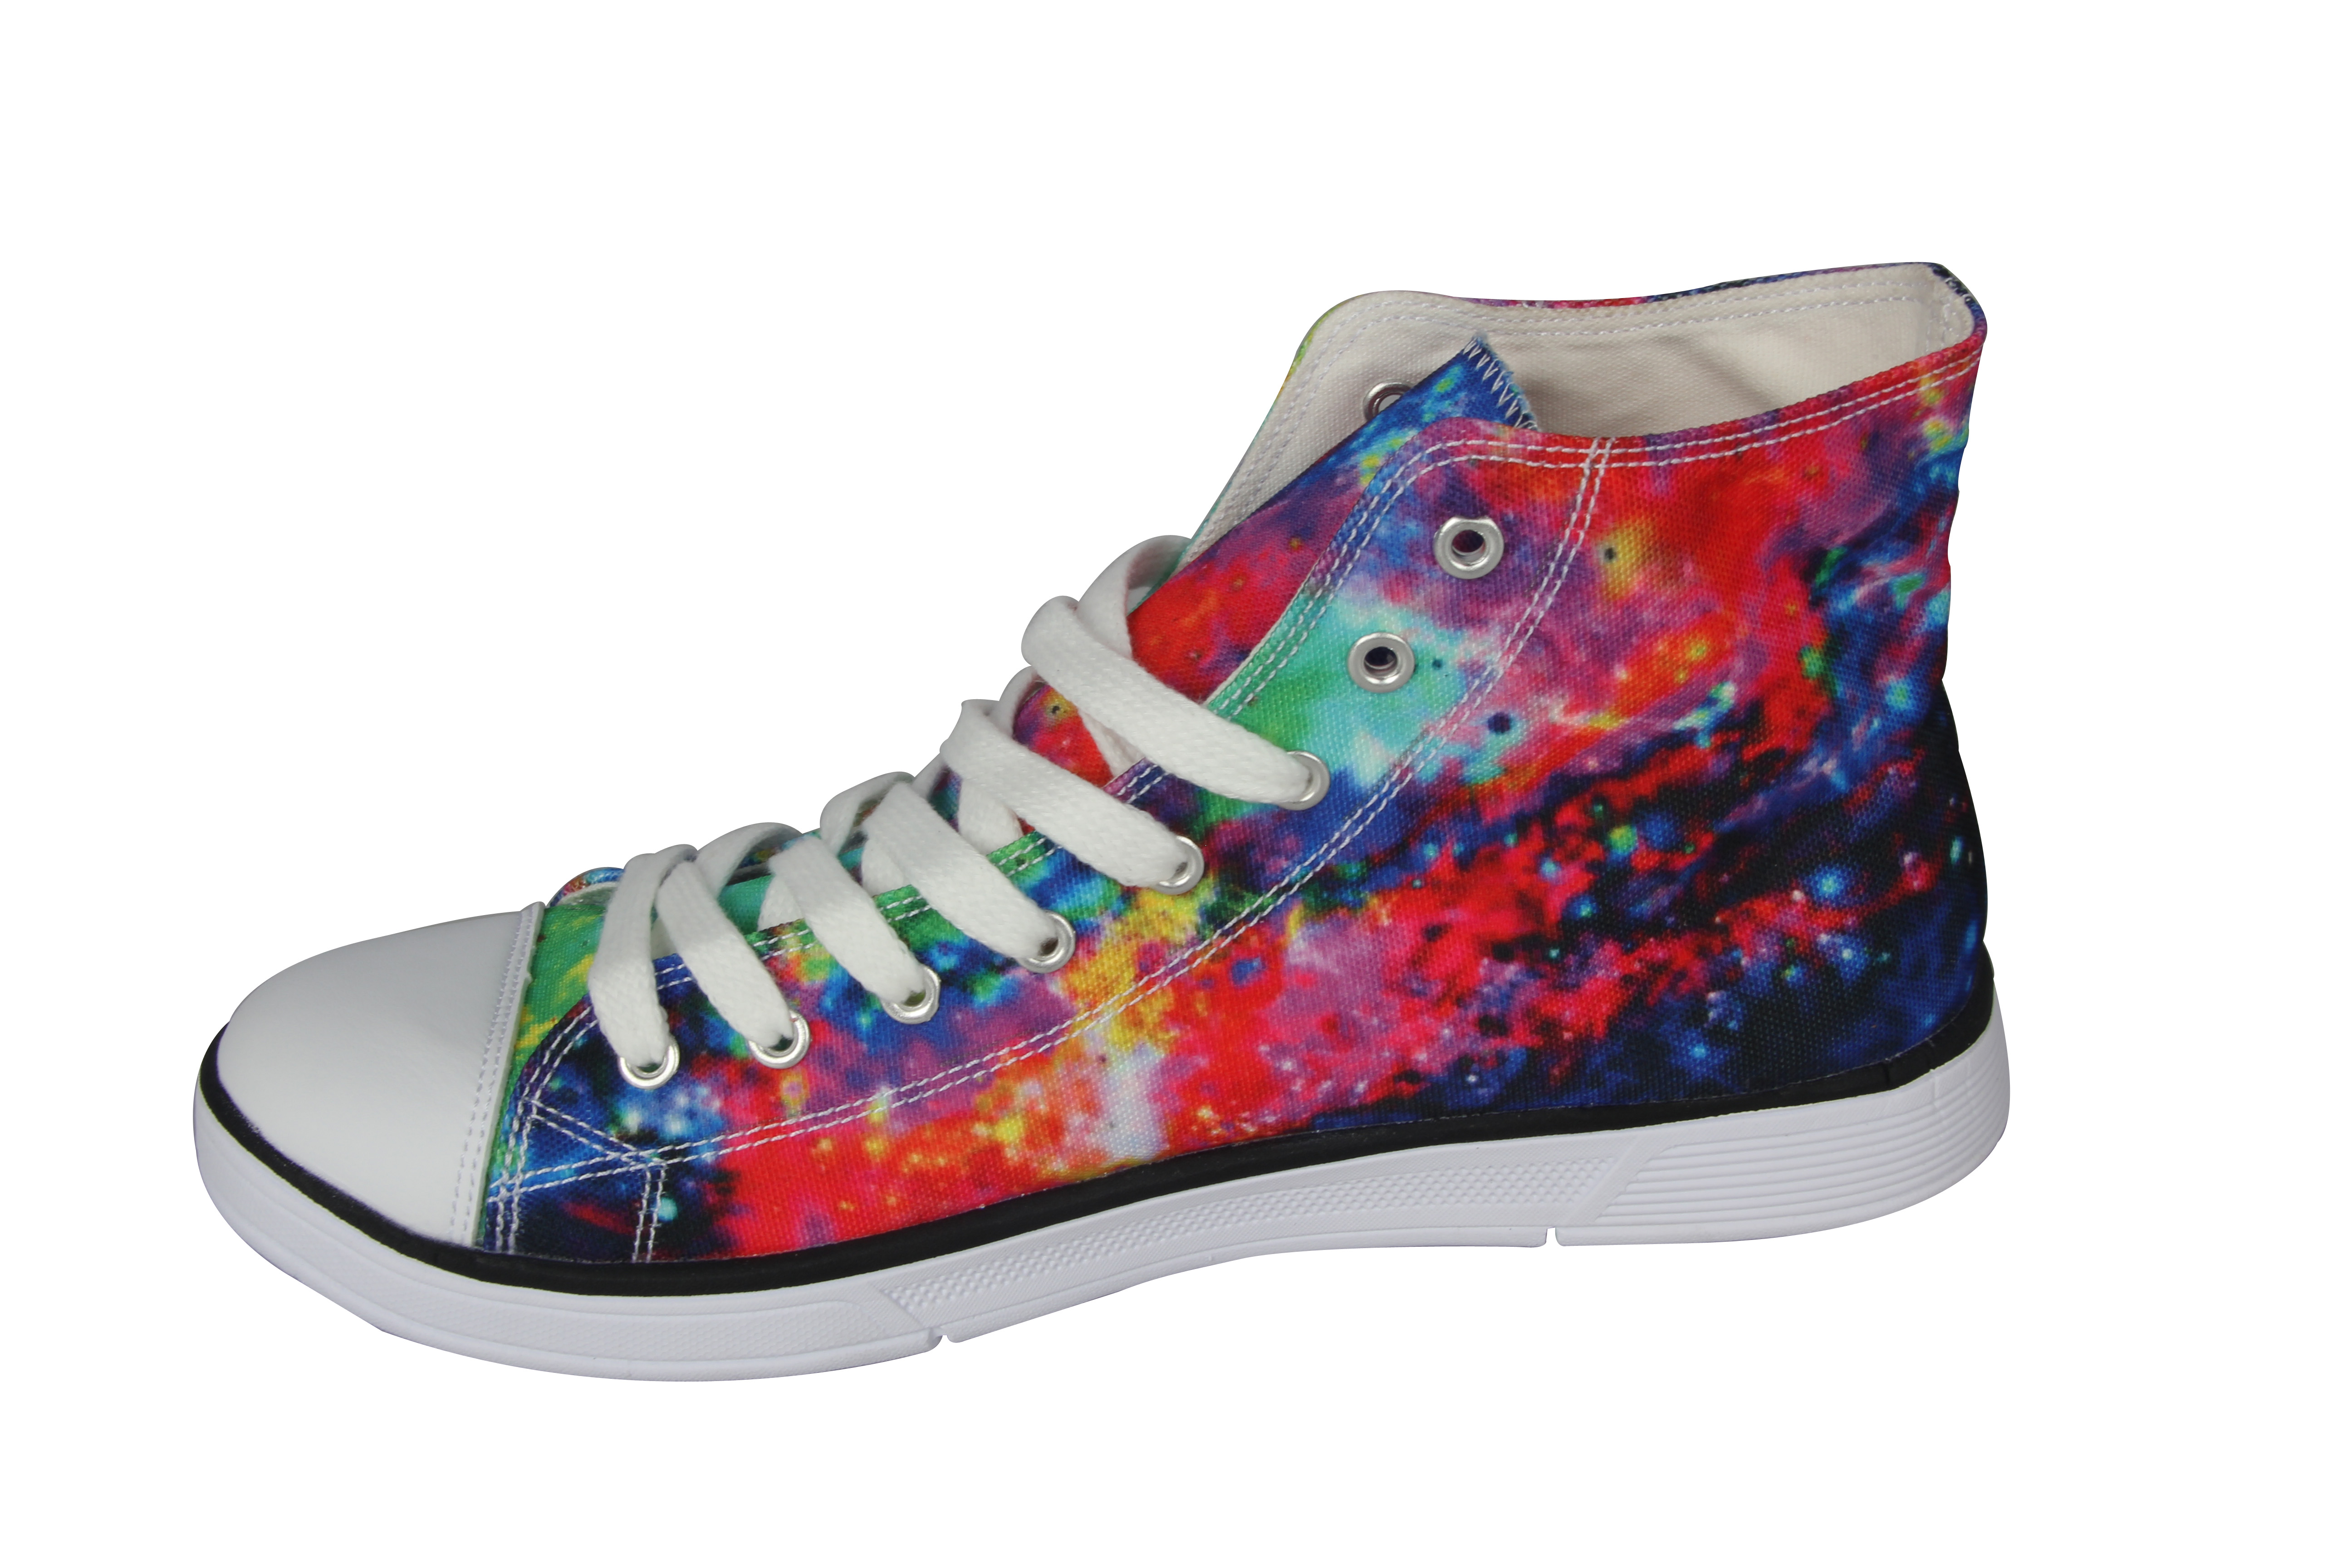 galaxy high top canvas shoes fashion flat shoes lace